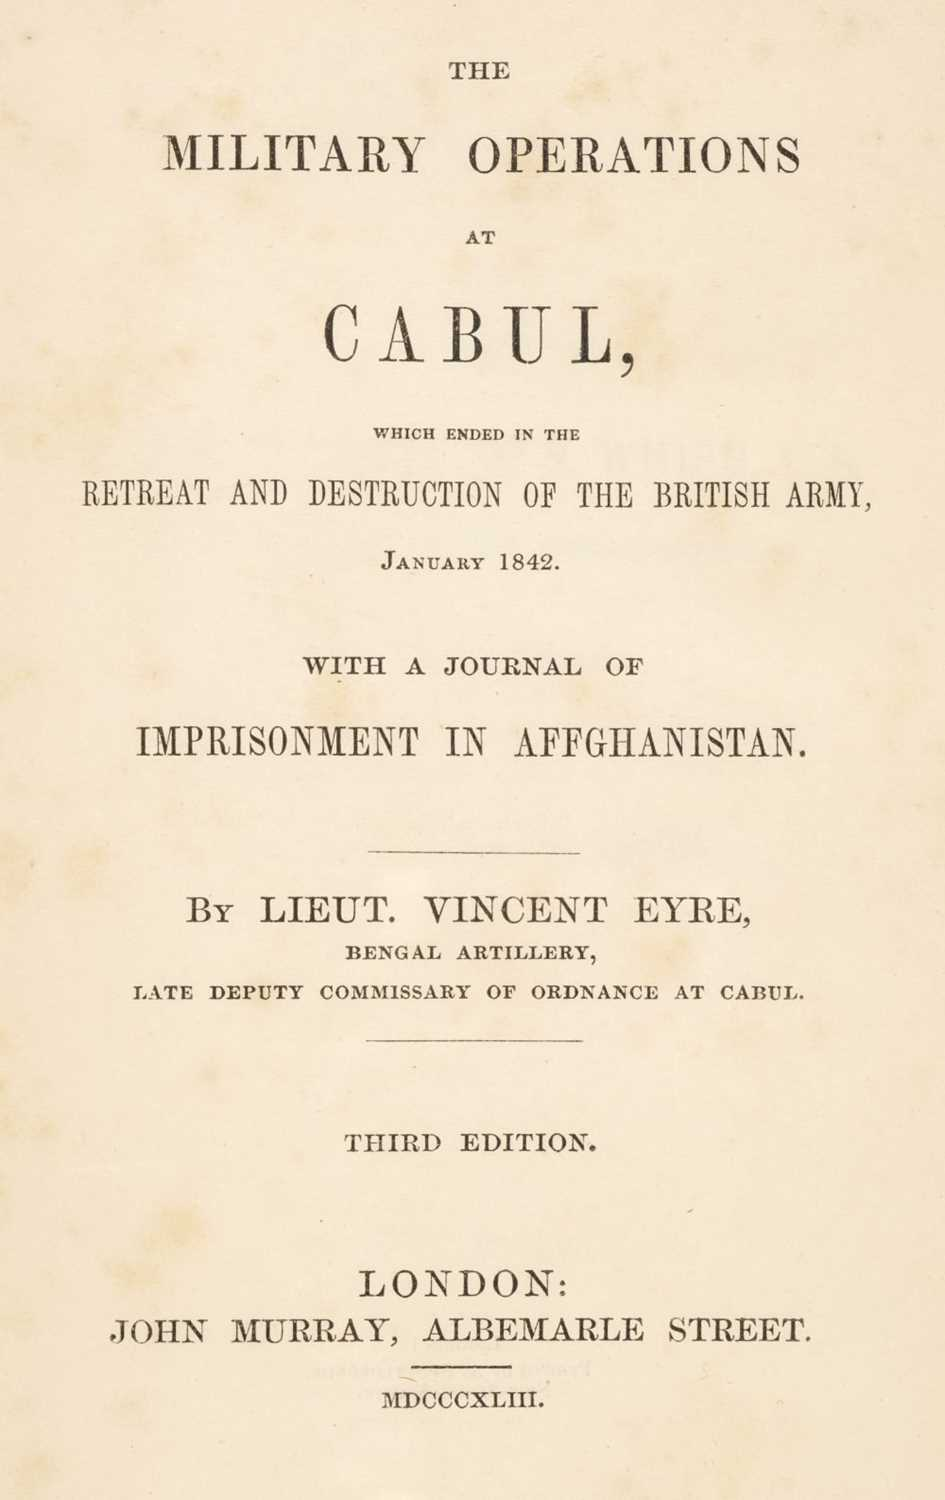 Lot 9 - Eyre (Lieutenant Vincent). The Military Operations at Cabul, 3rd edition, 1843